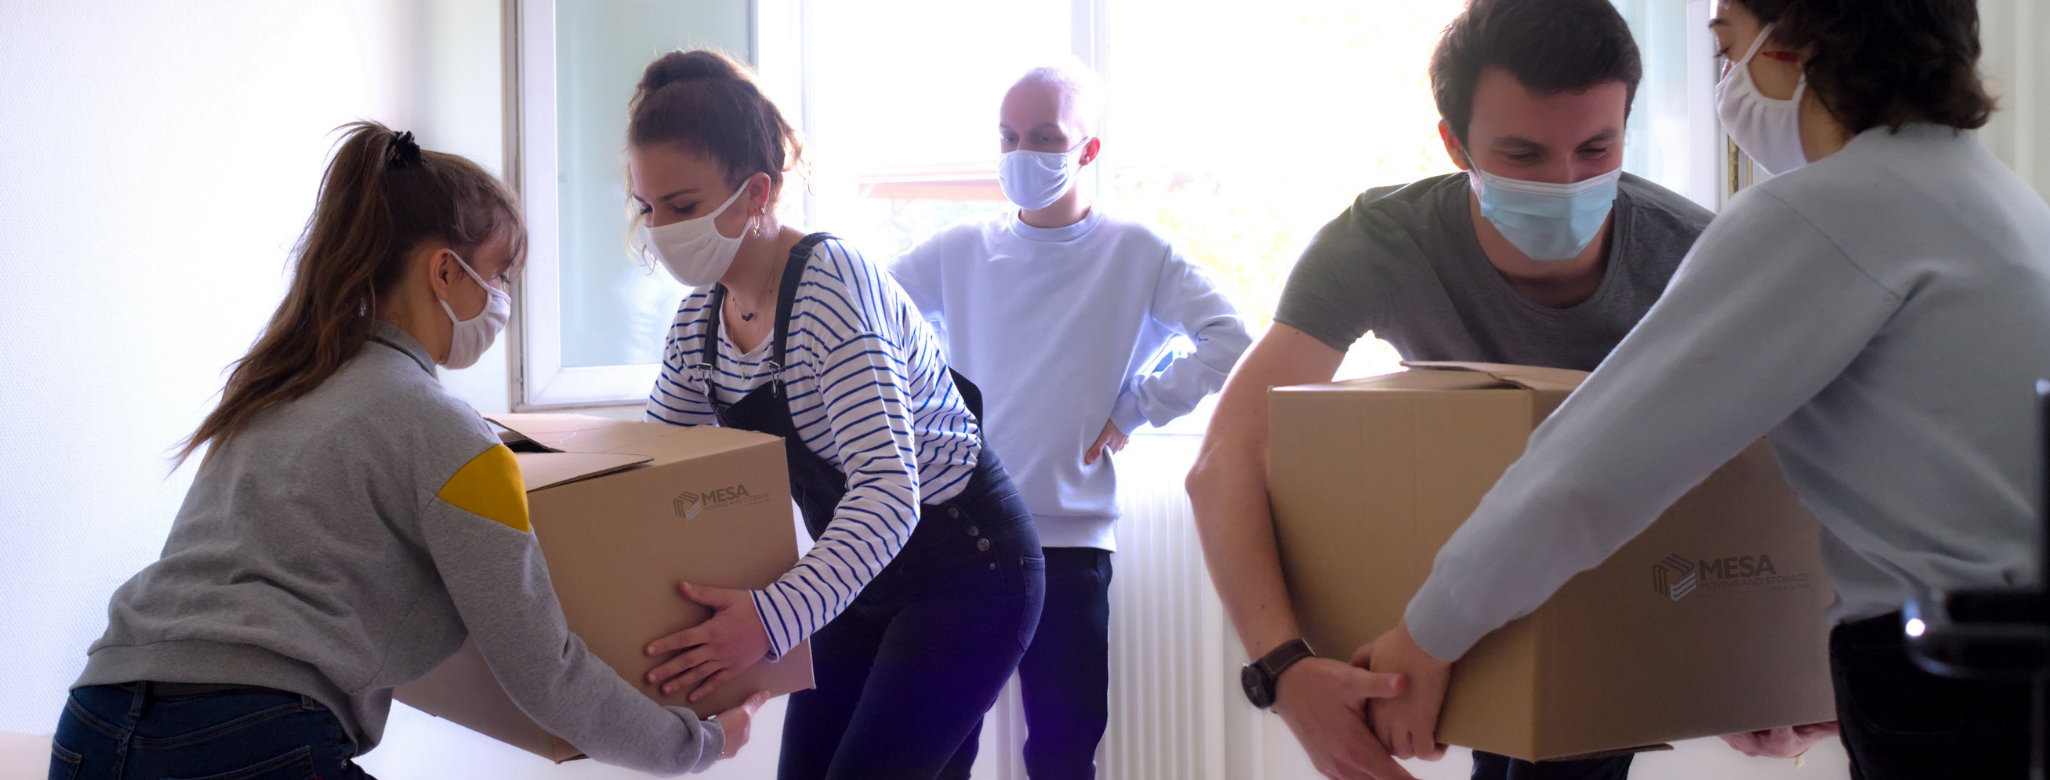 How to Pack for an Upcoming International Move During COVID-19